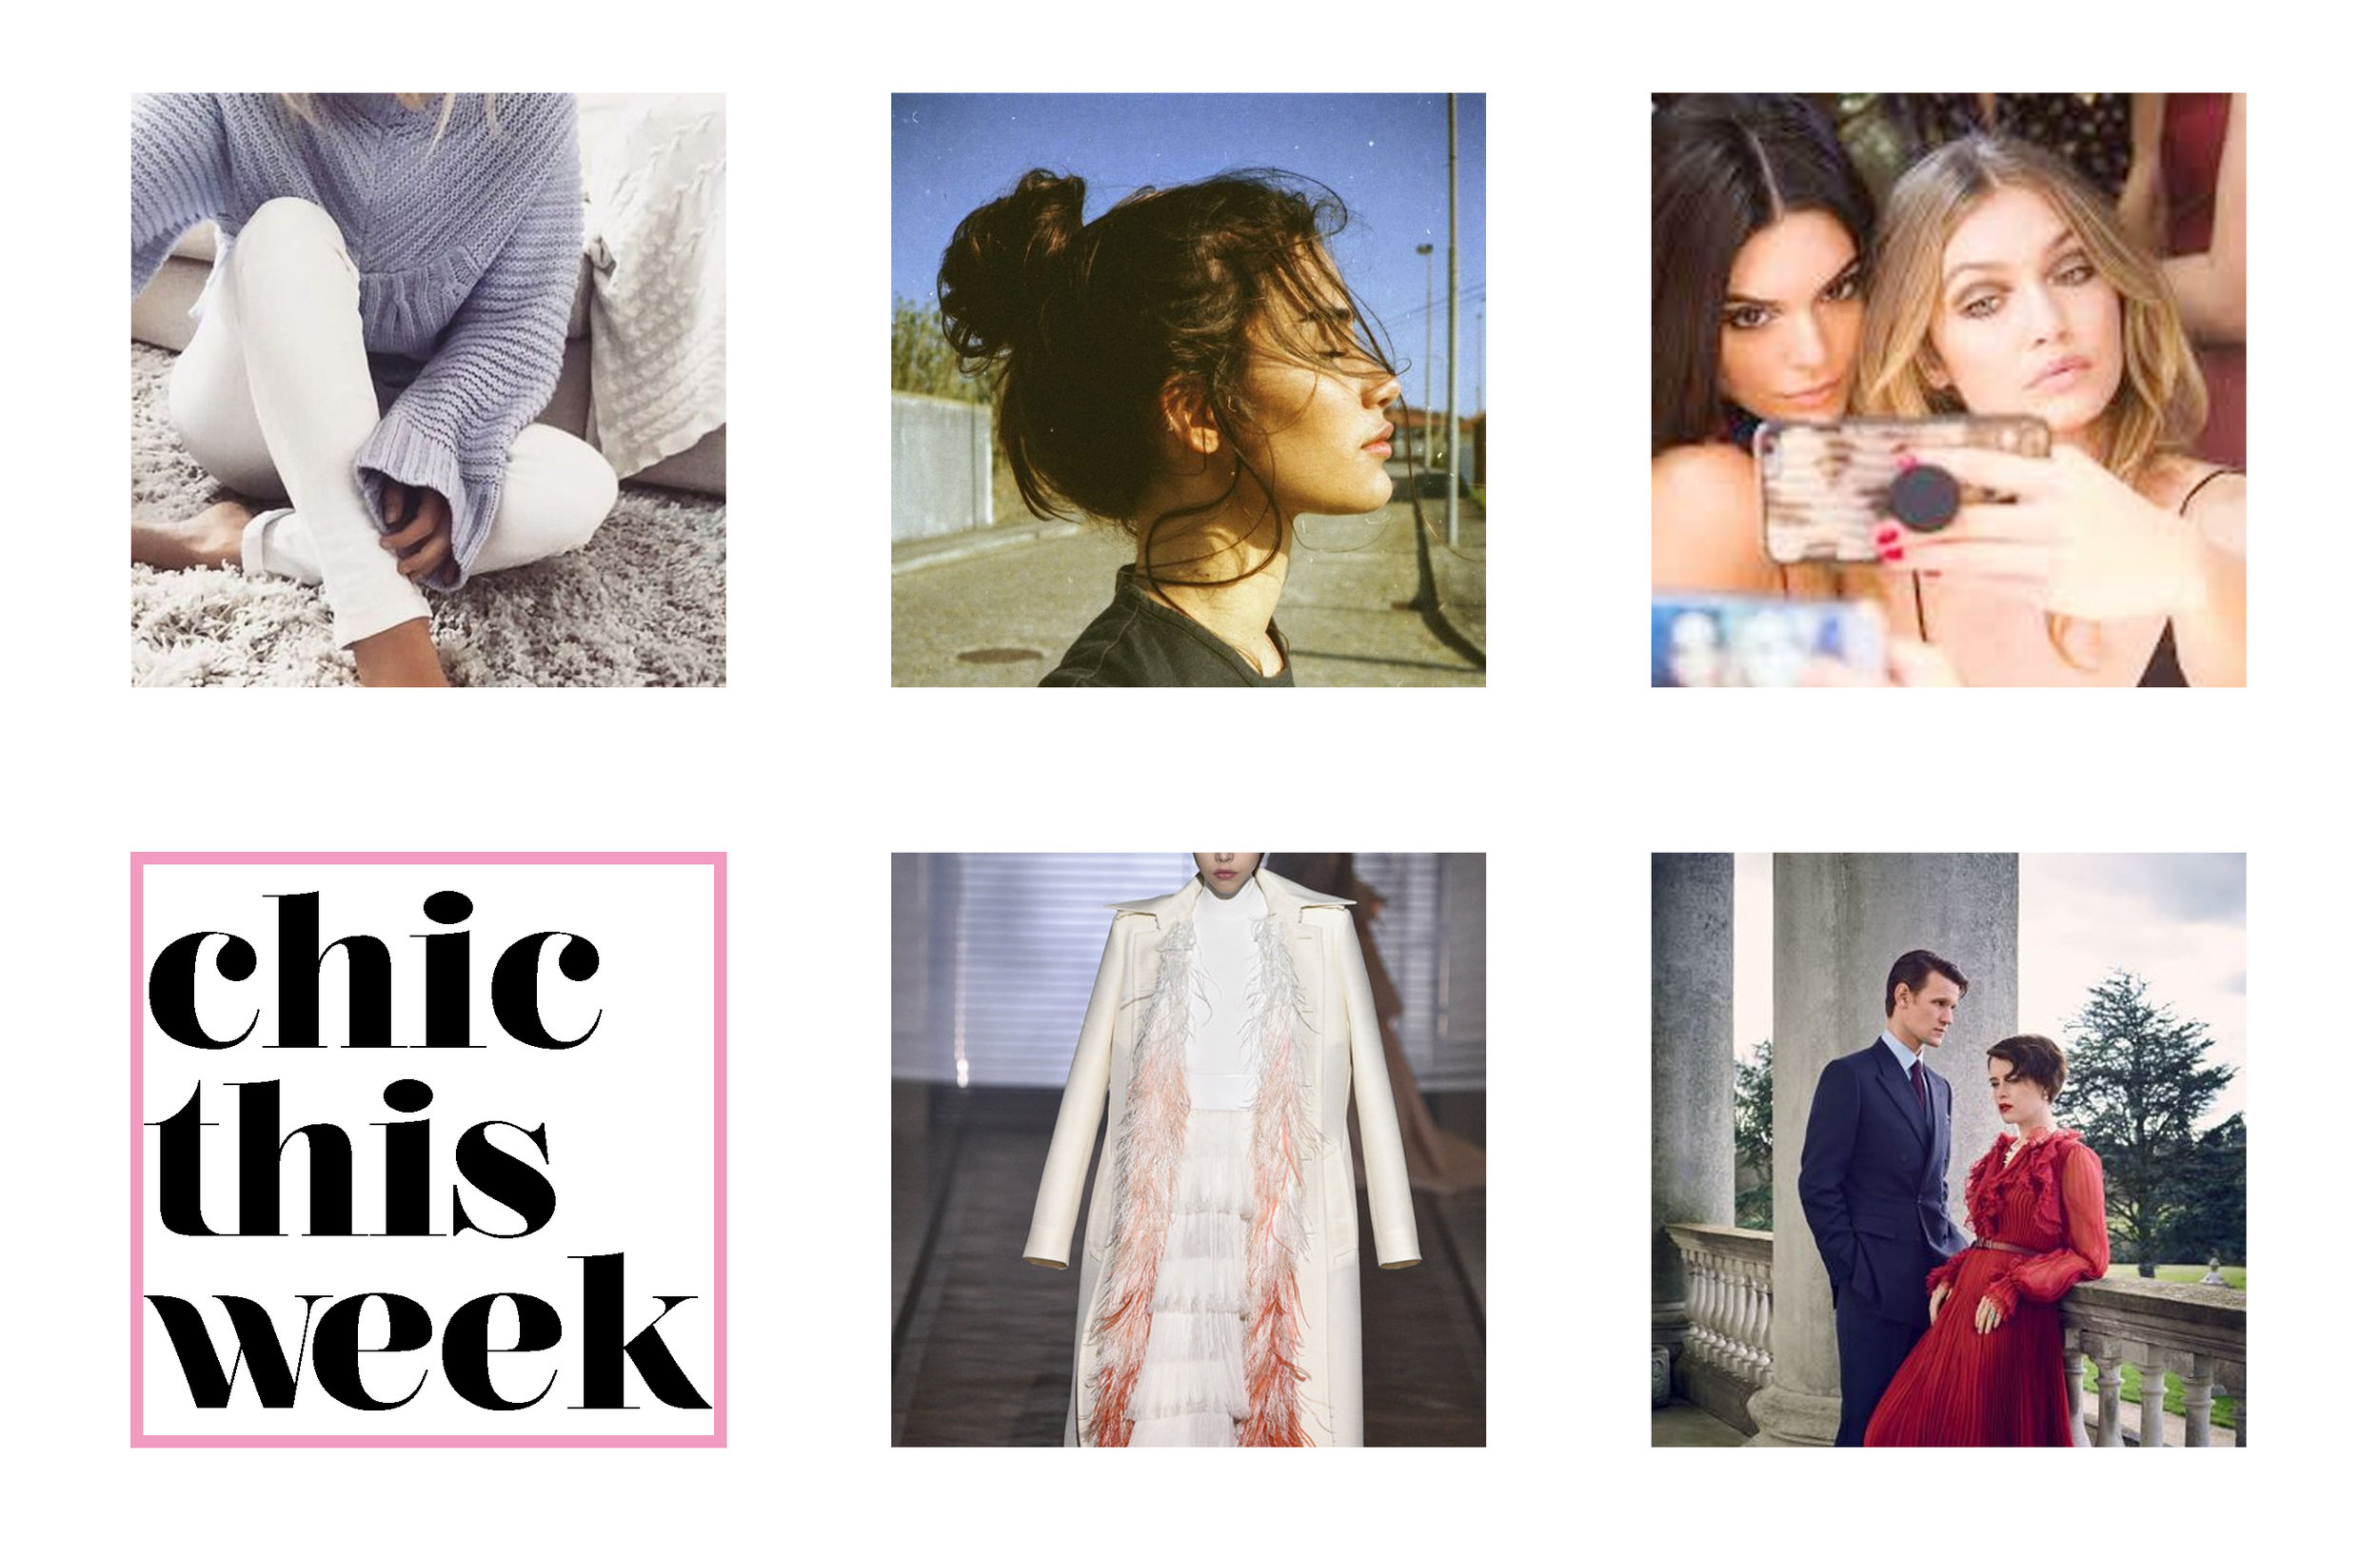 What's CHIC this week (vol. 051)